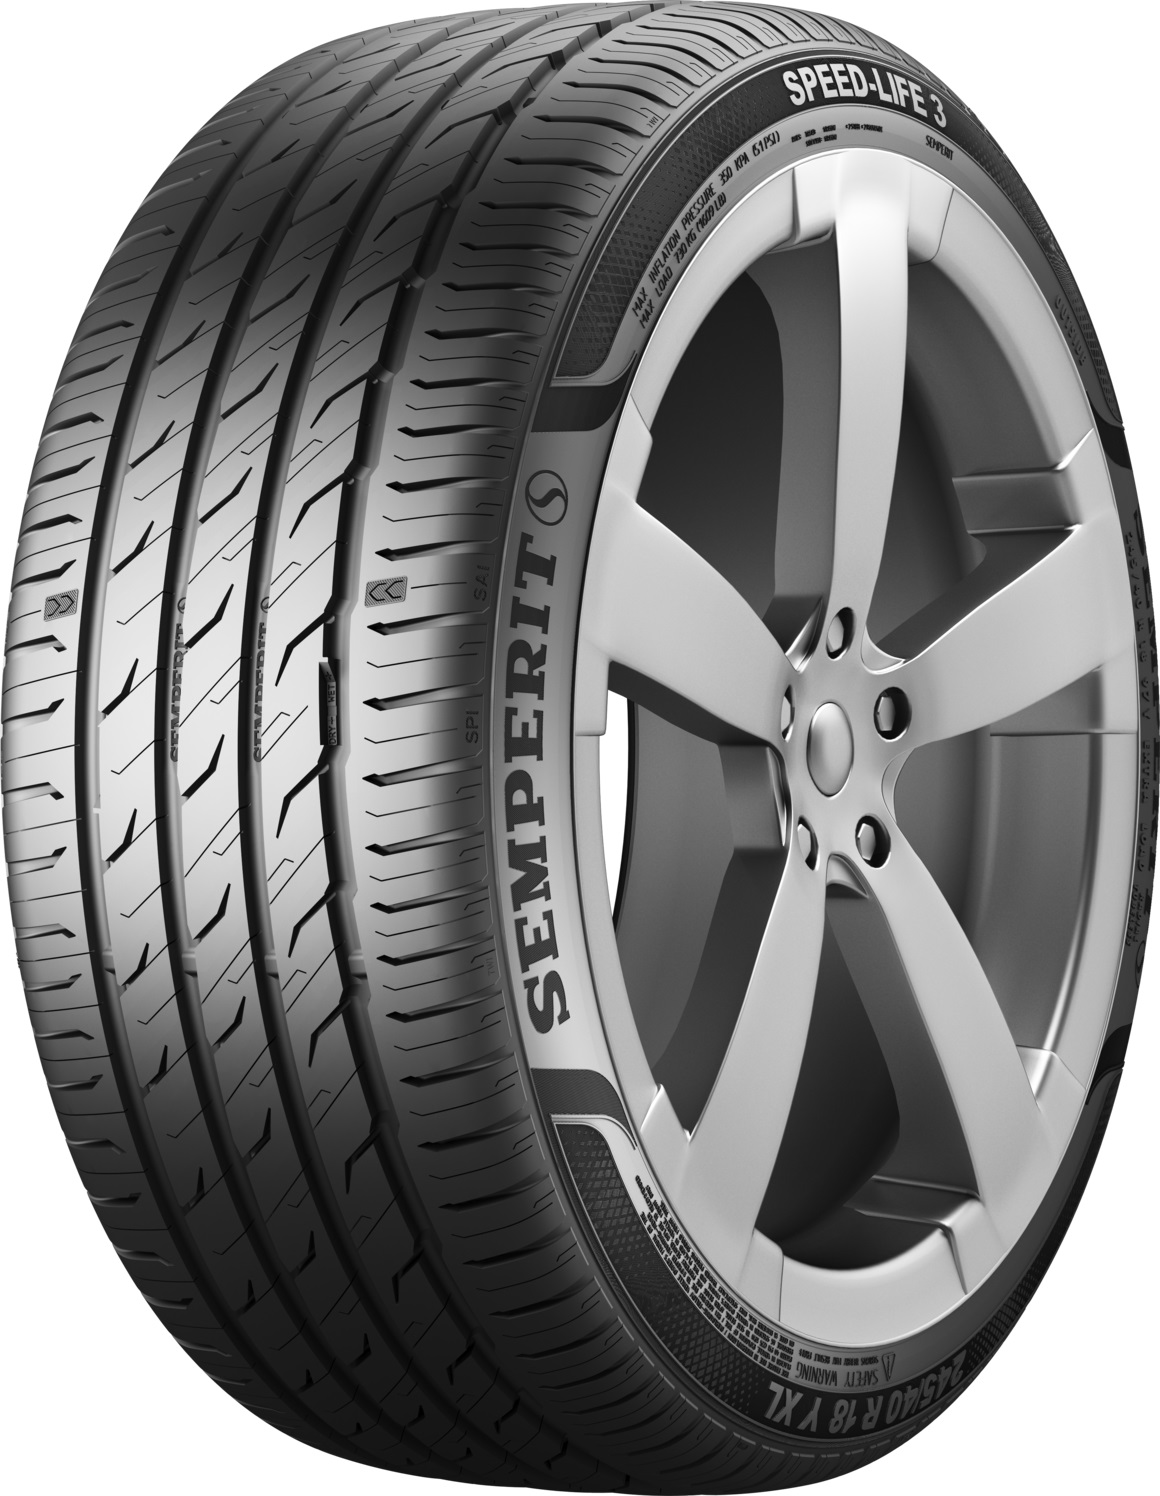 Гуми SEMPERIT 225/45R17 91Y FR SPEED-LIFE 3